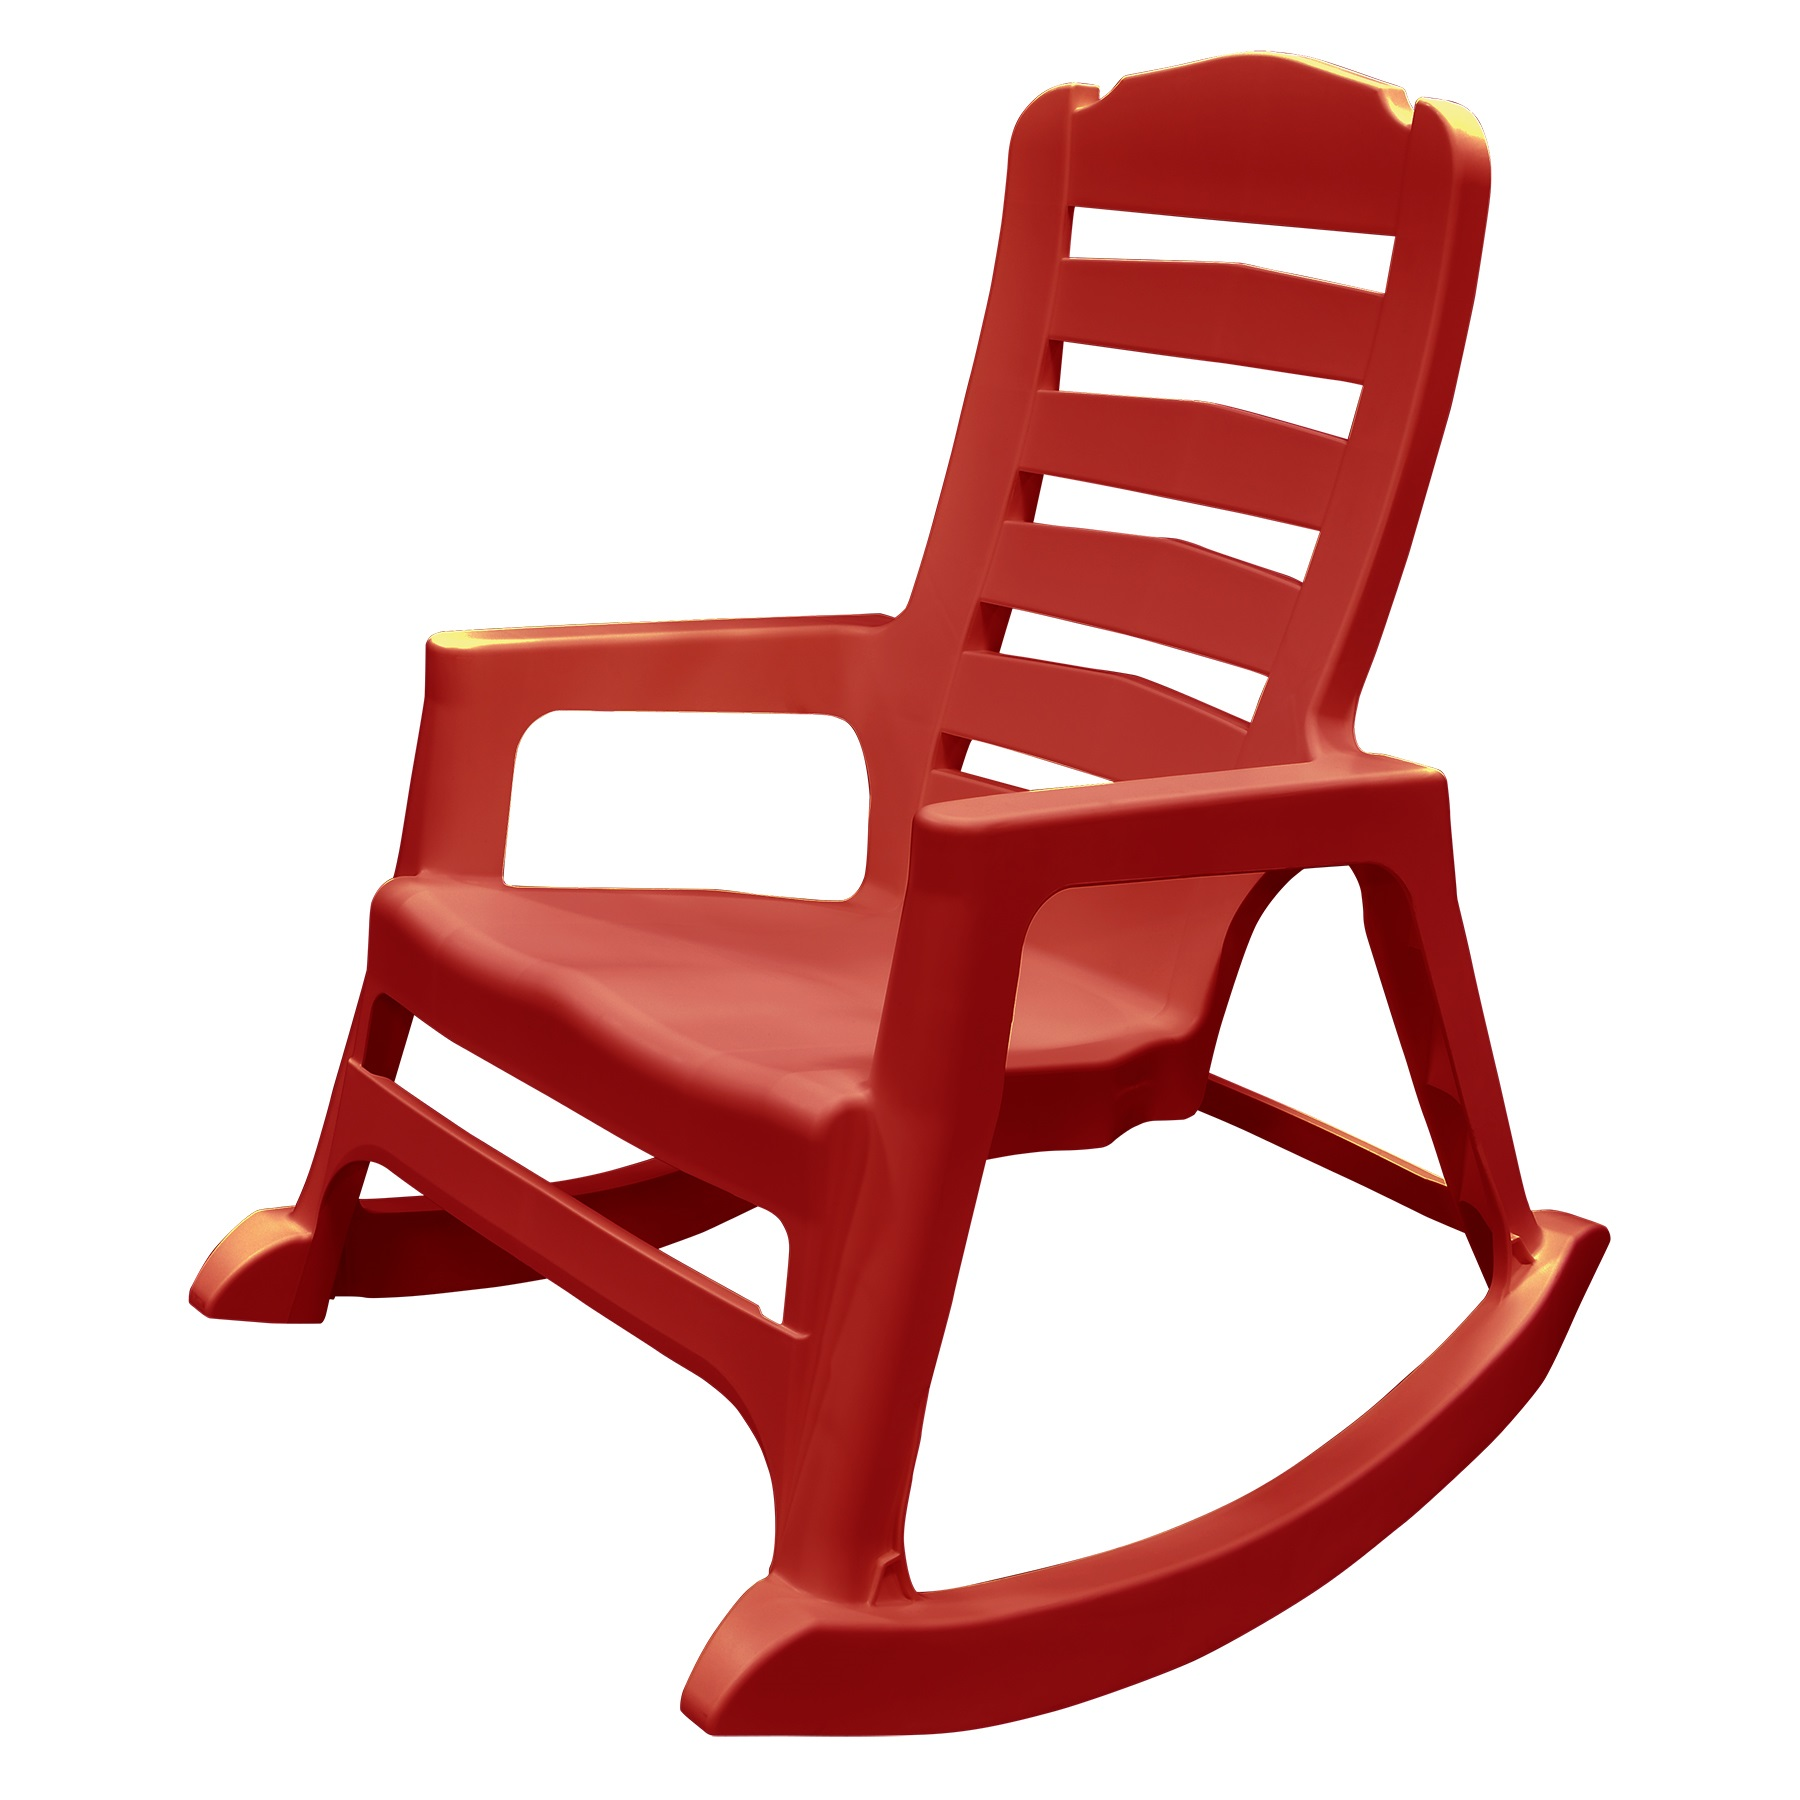 Image of Adams Manufacturing Resin Patio Big Easy Rocking Chair - Cherry Red